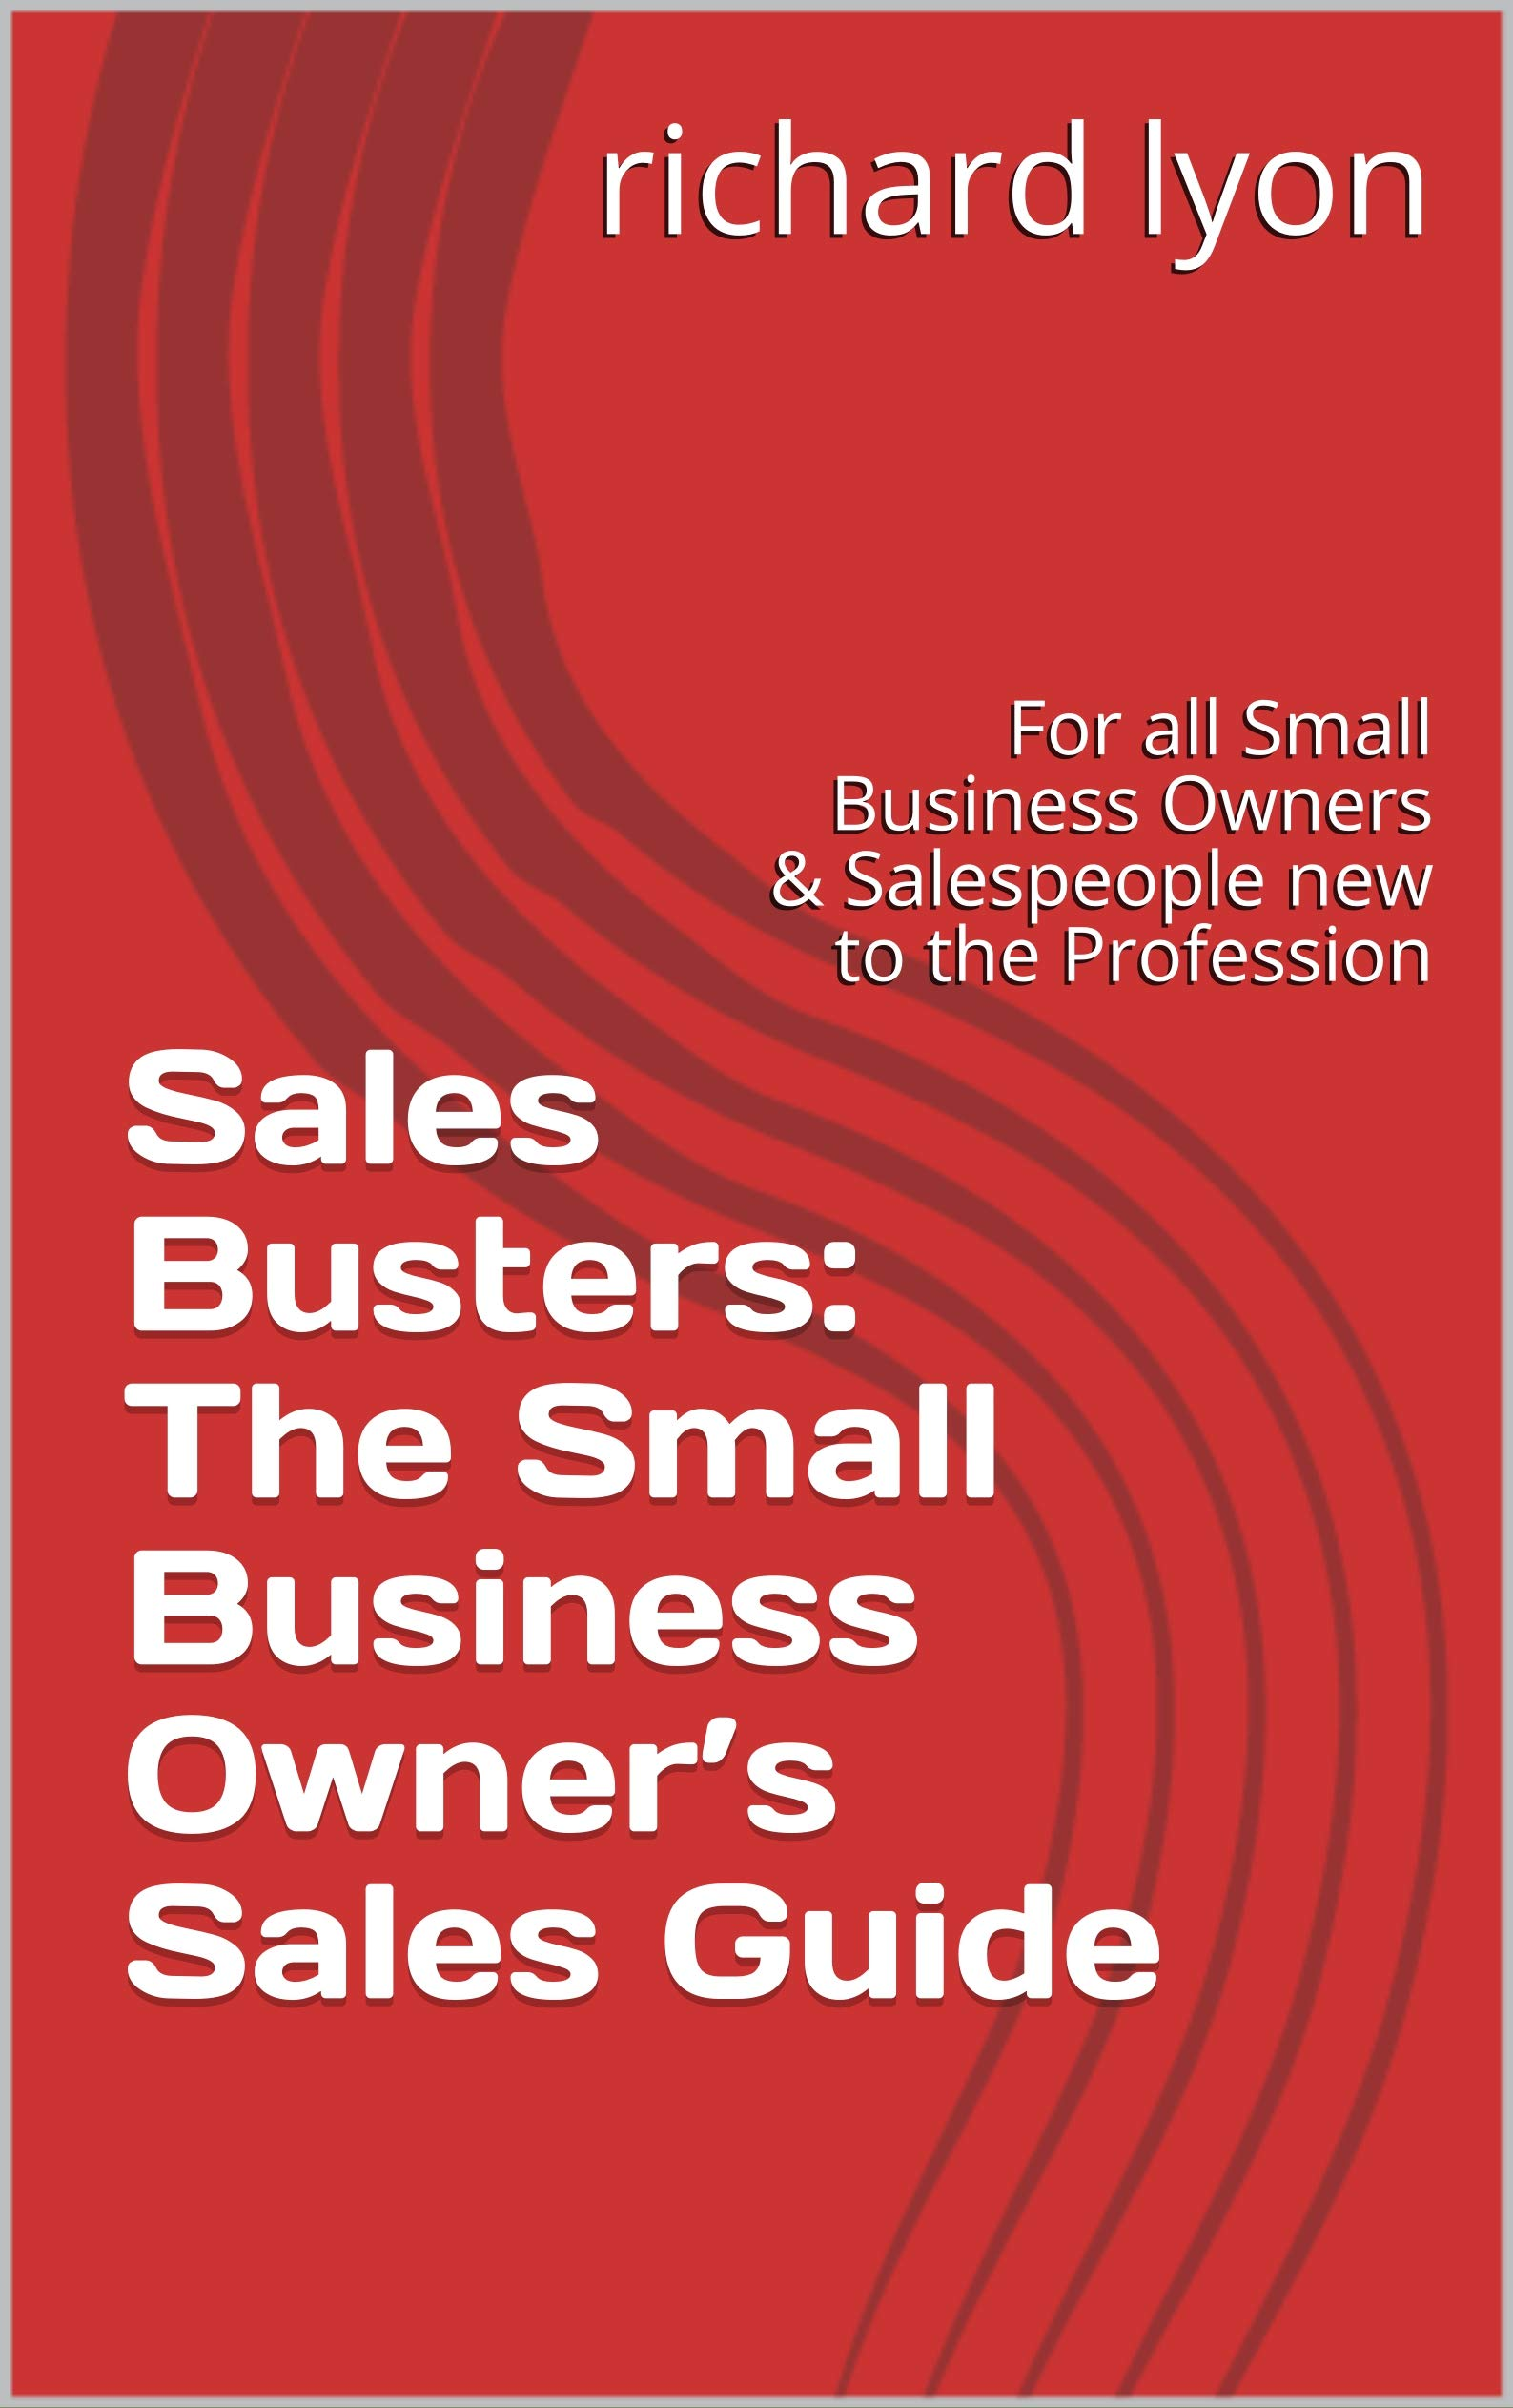 Sales Busters: The Small Business Owner's Sales Guide: For all Small Business Owners & Salespeople new to the Profession